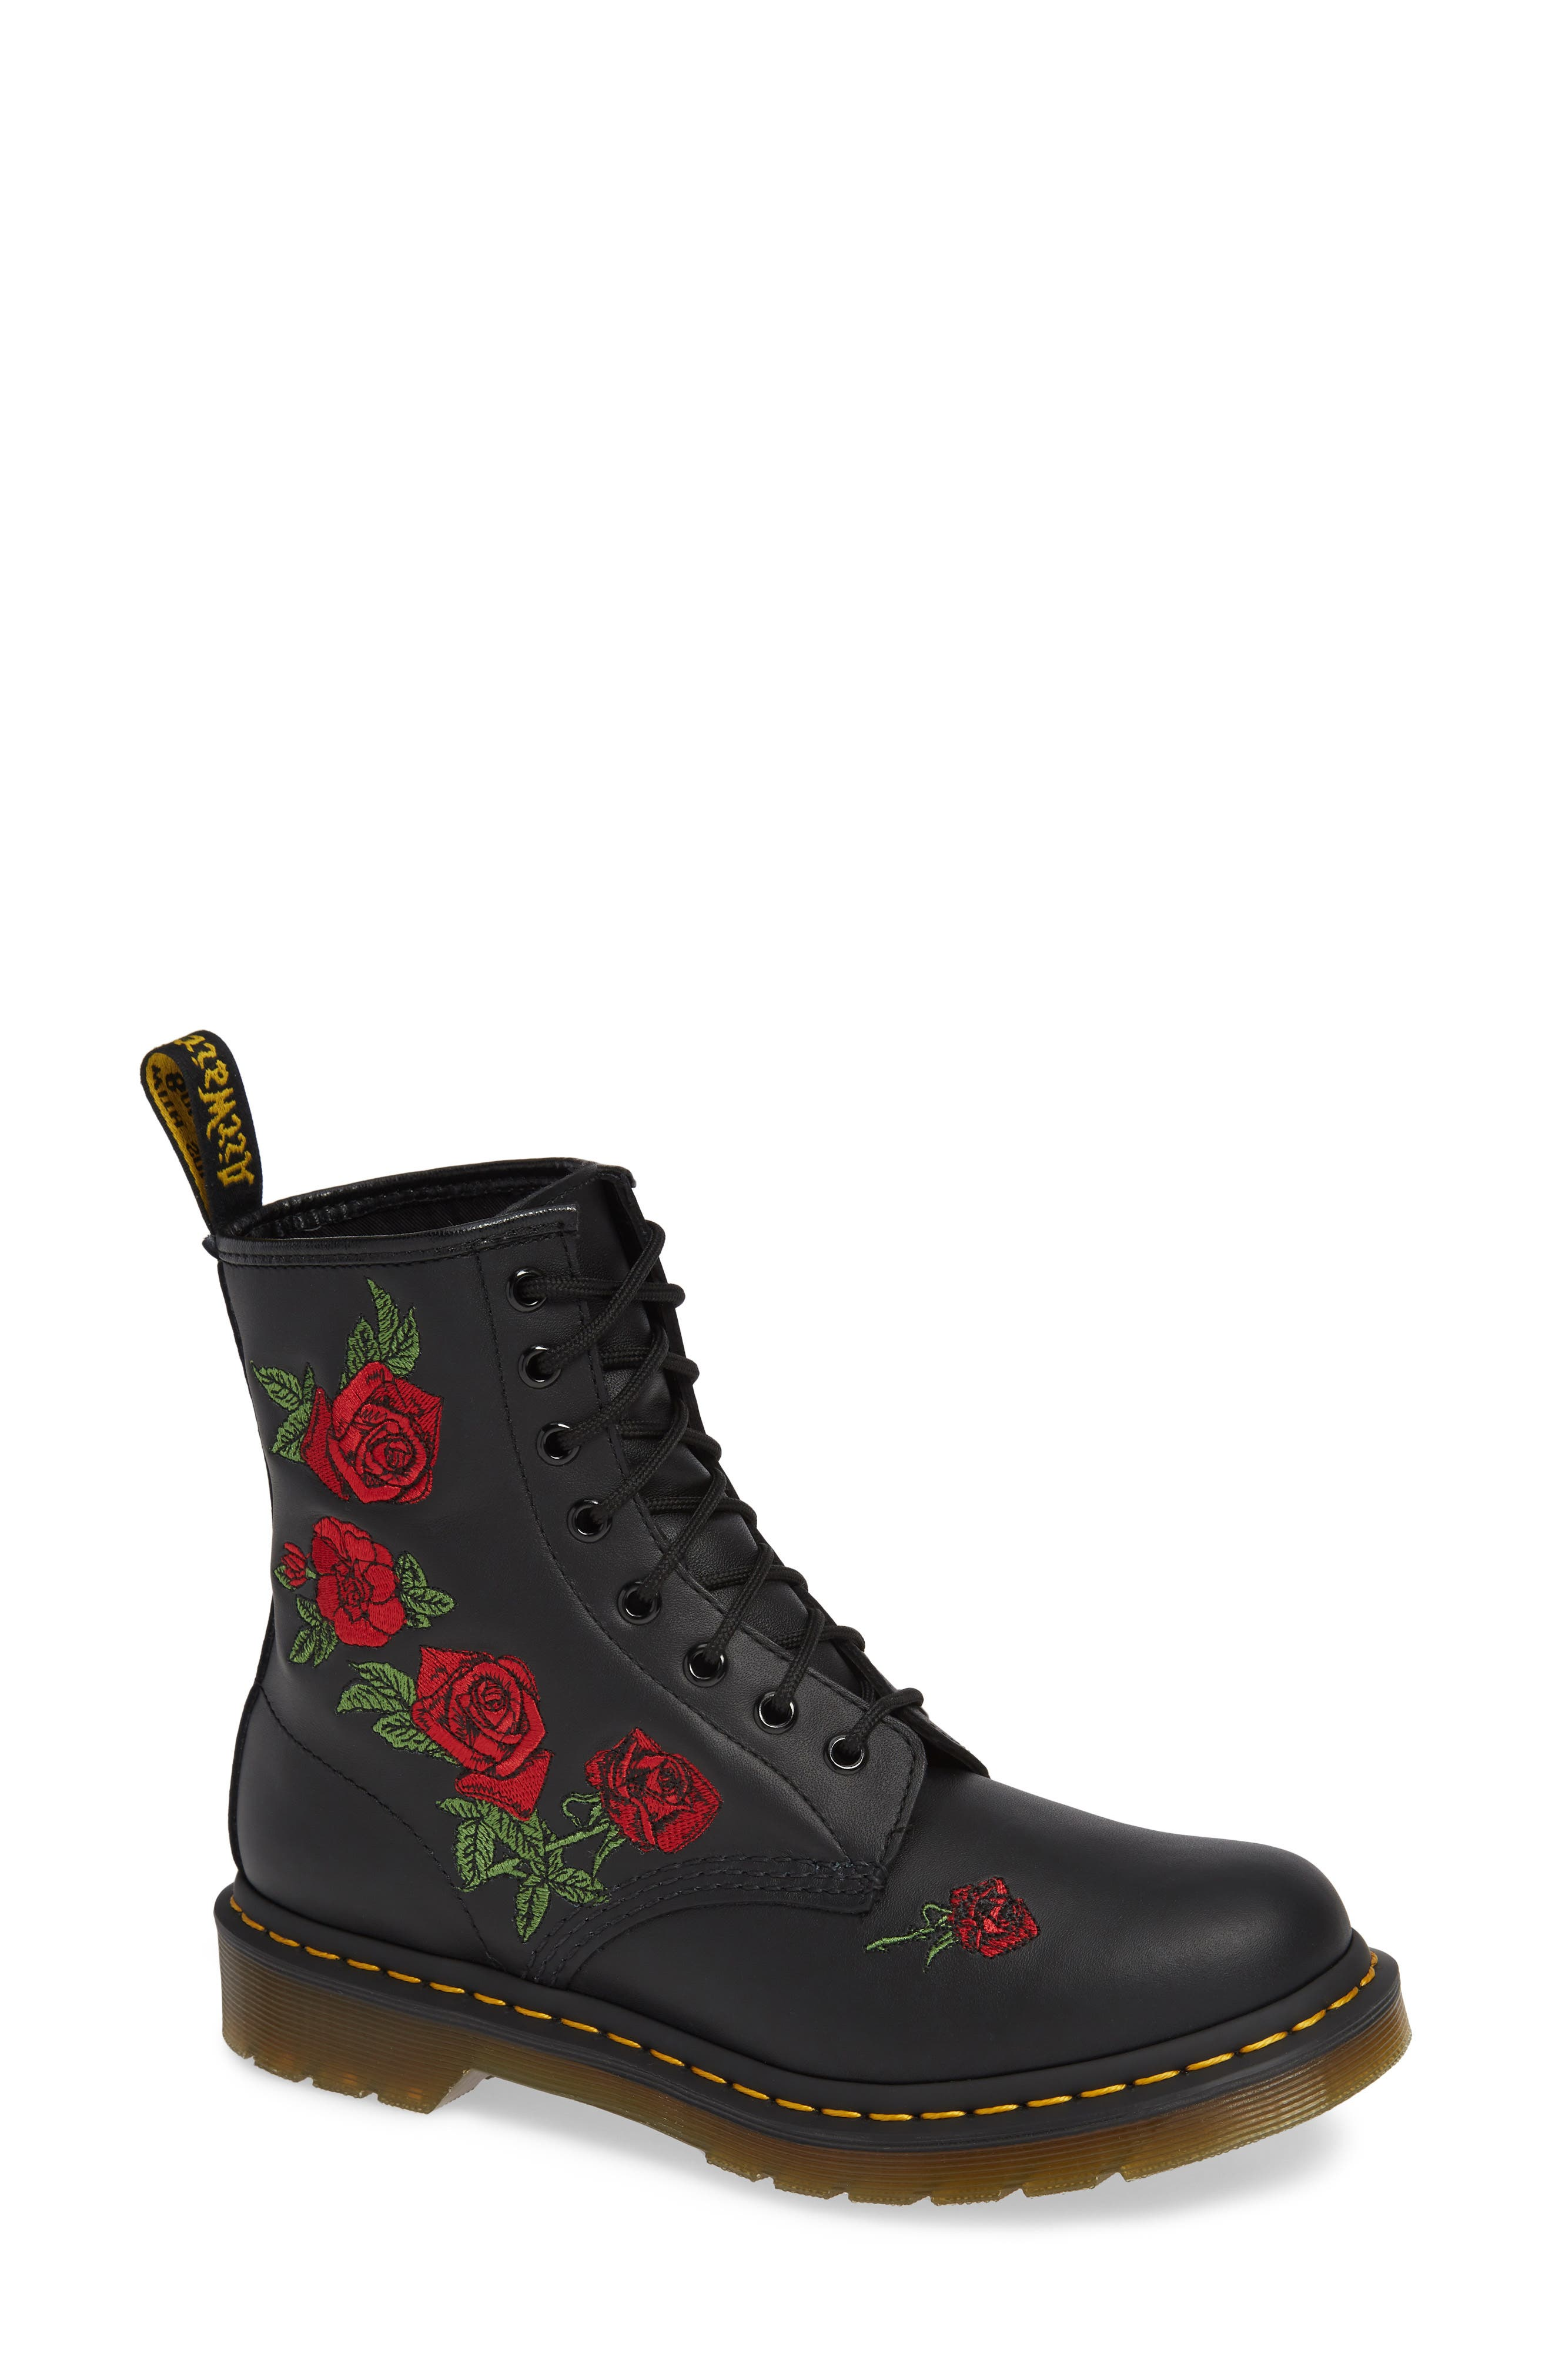 DR. MARTENS, 1460 Vonda Embroidered Bootie, Main thumbnail 1, color, BLACK VIRGINIA LEATHER